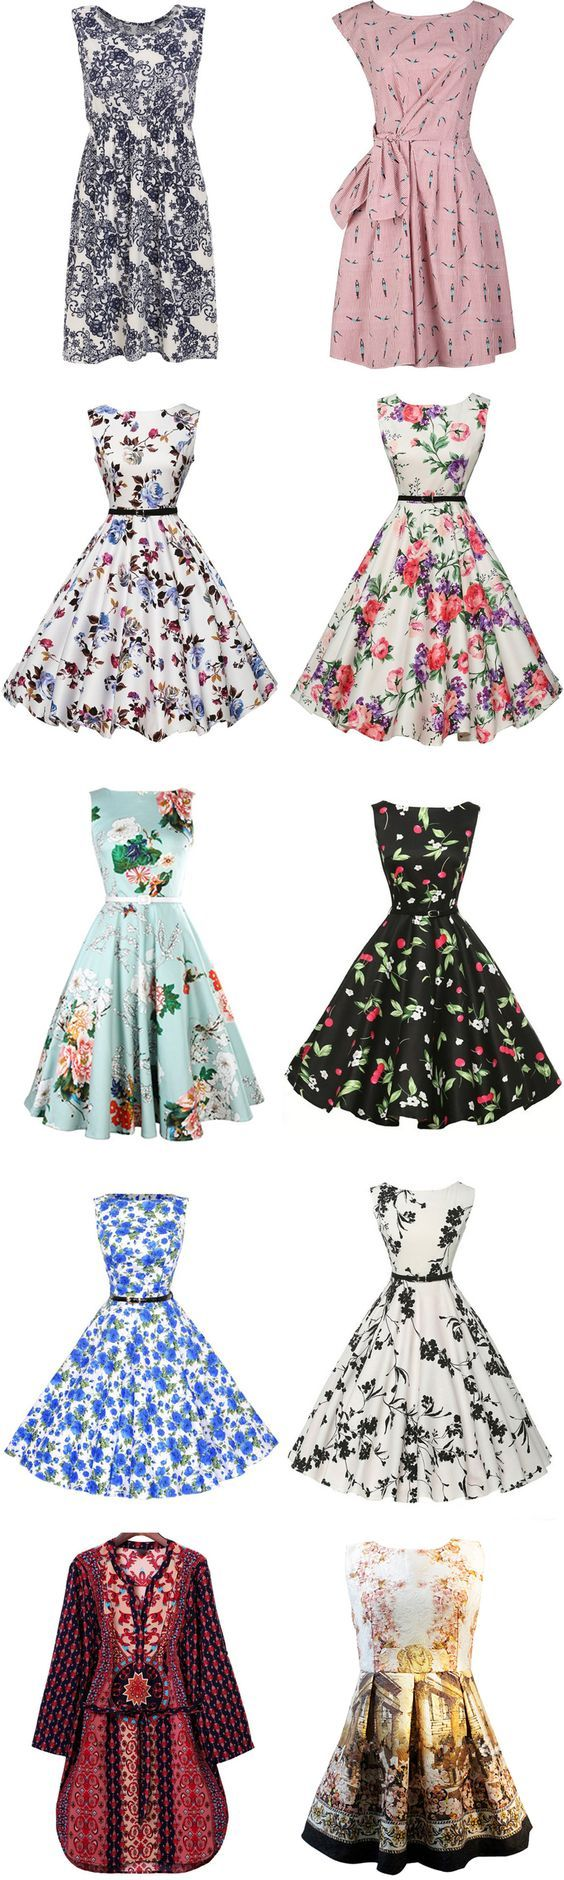 Weekend Style - Vintage Printed Dresses from Romwe.com: